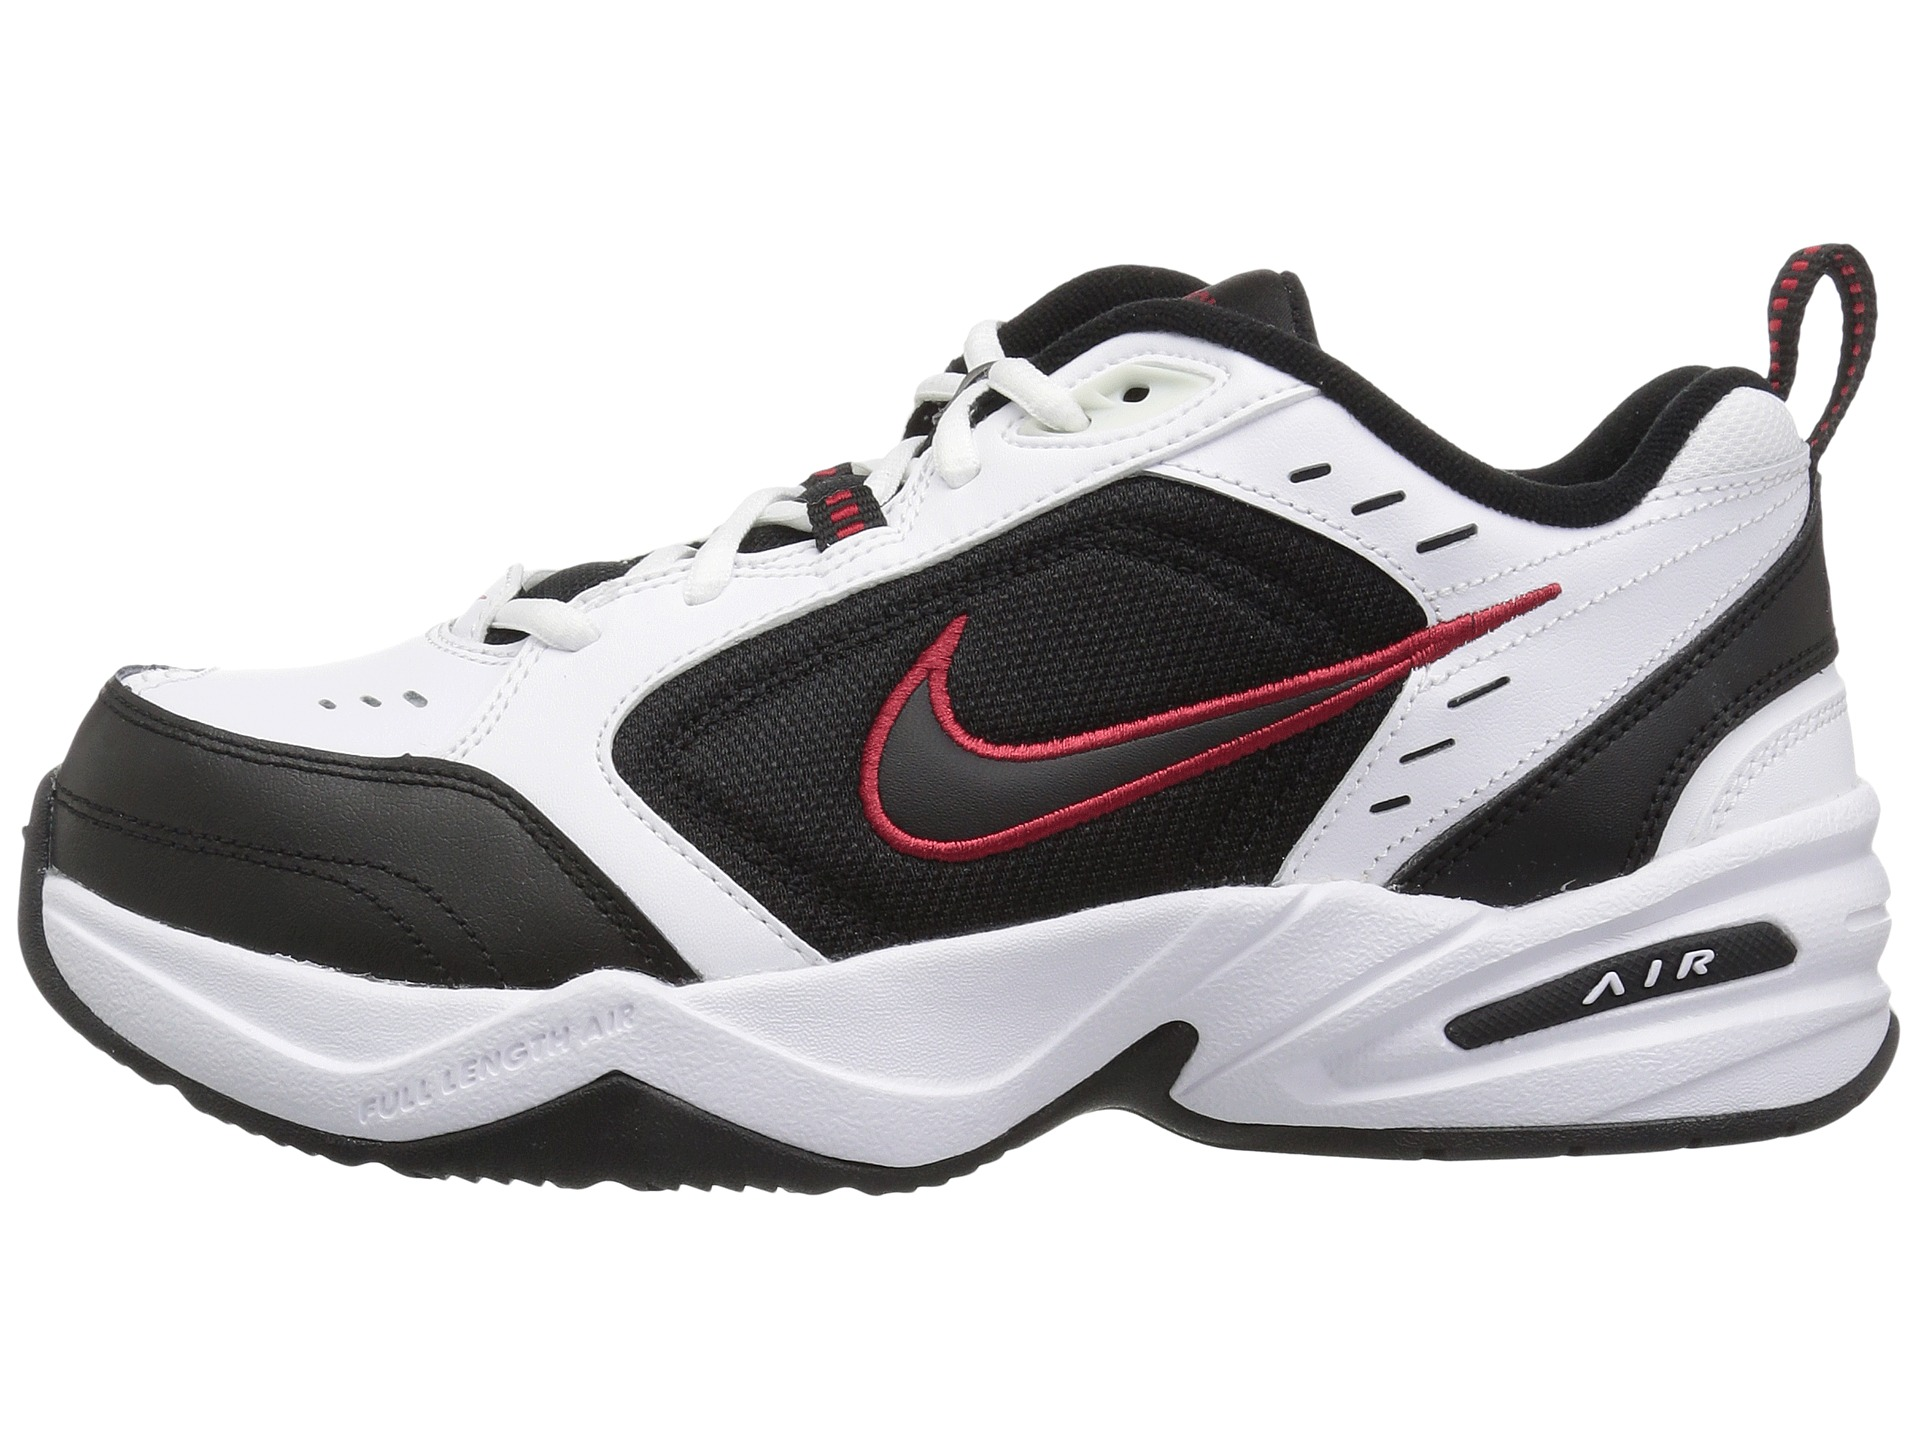 New Nike Air Monarch IV Wide Training Shoe White Silver Navy Men